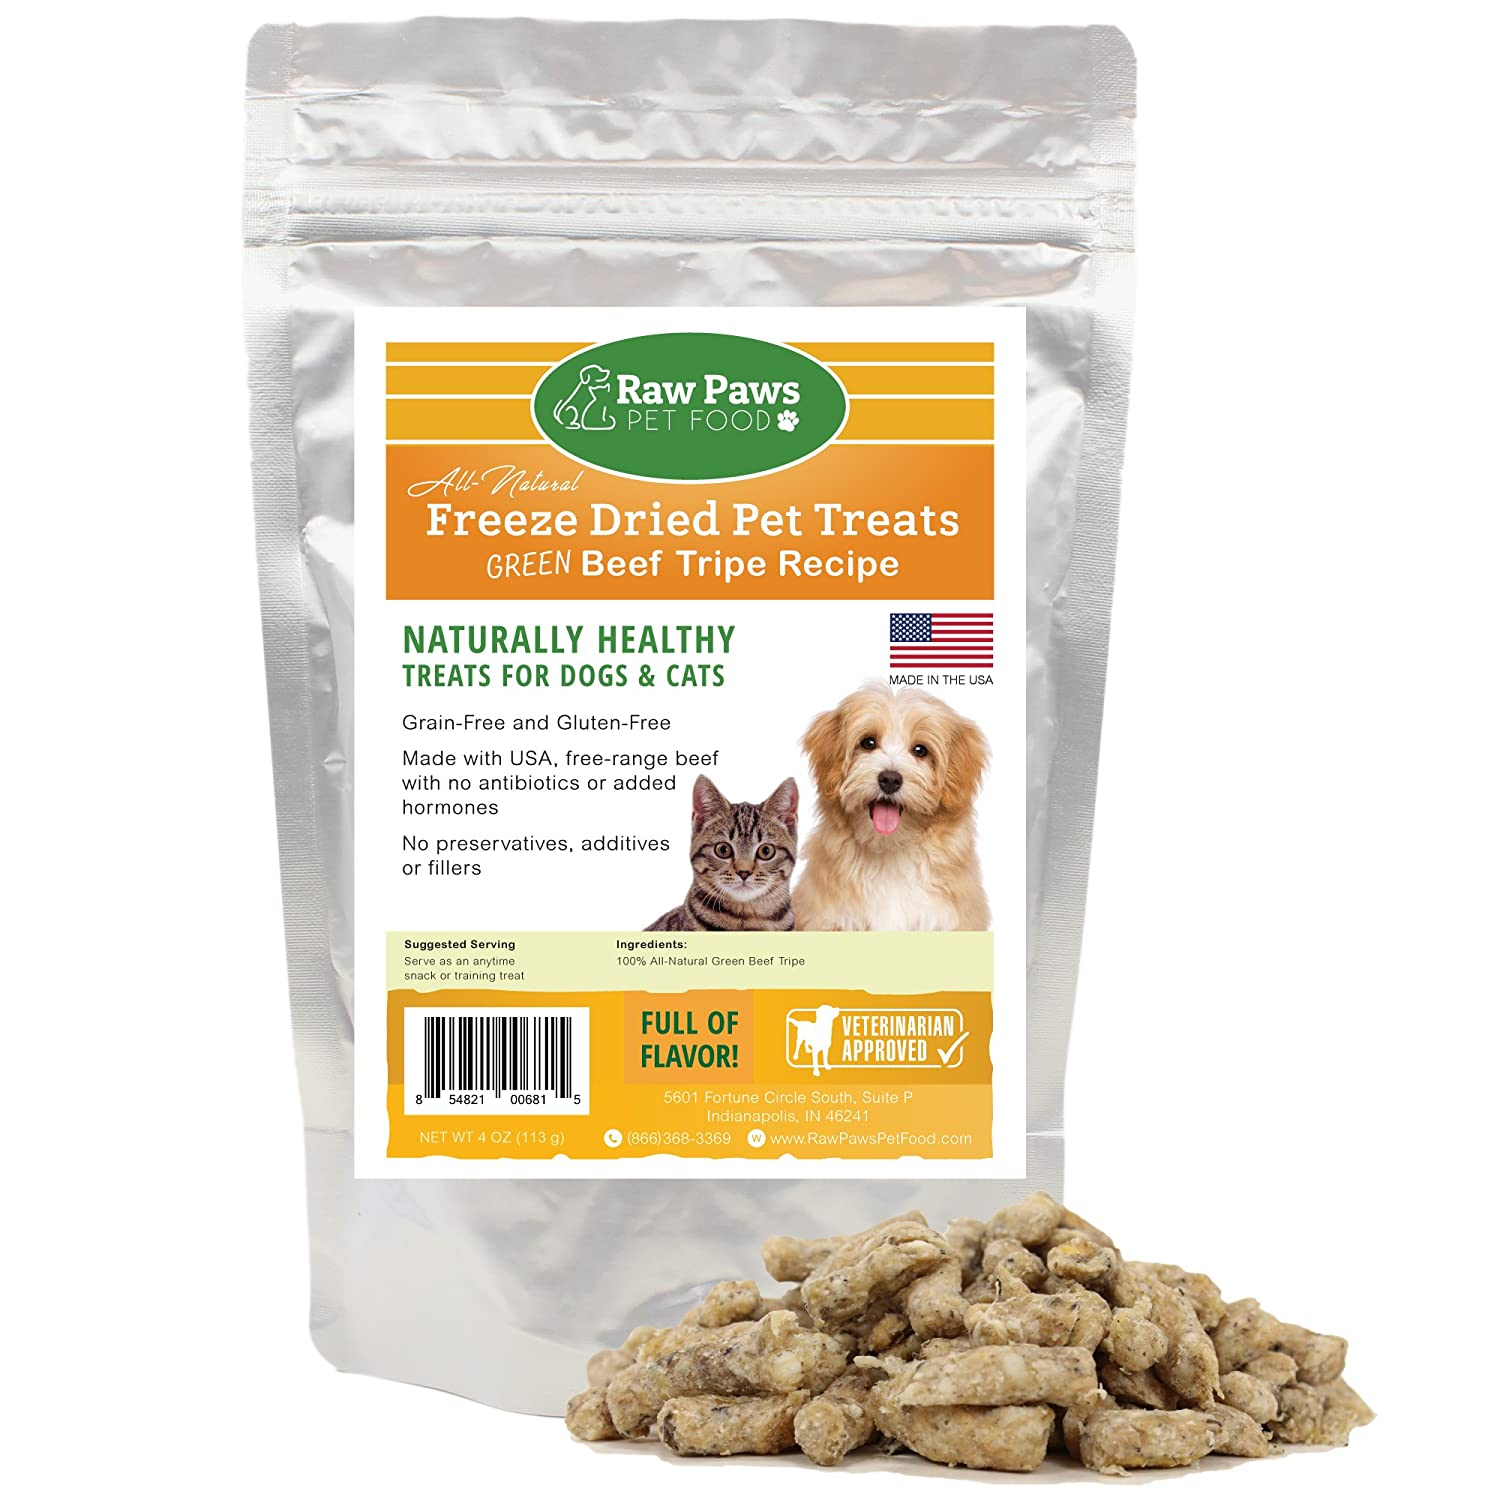 Amazon raw paws pet premium raw freeze dried green tripe amazon raw paws pet premium raw freeze dried green tripe treats for dogs cats 4 ounce all natural pet snacks grass fed beef made in usa only forumfinder Images